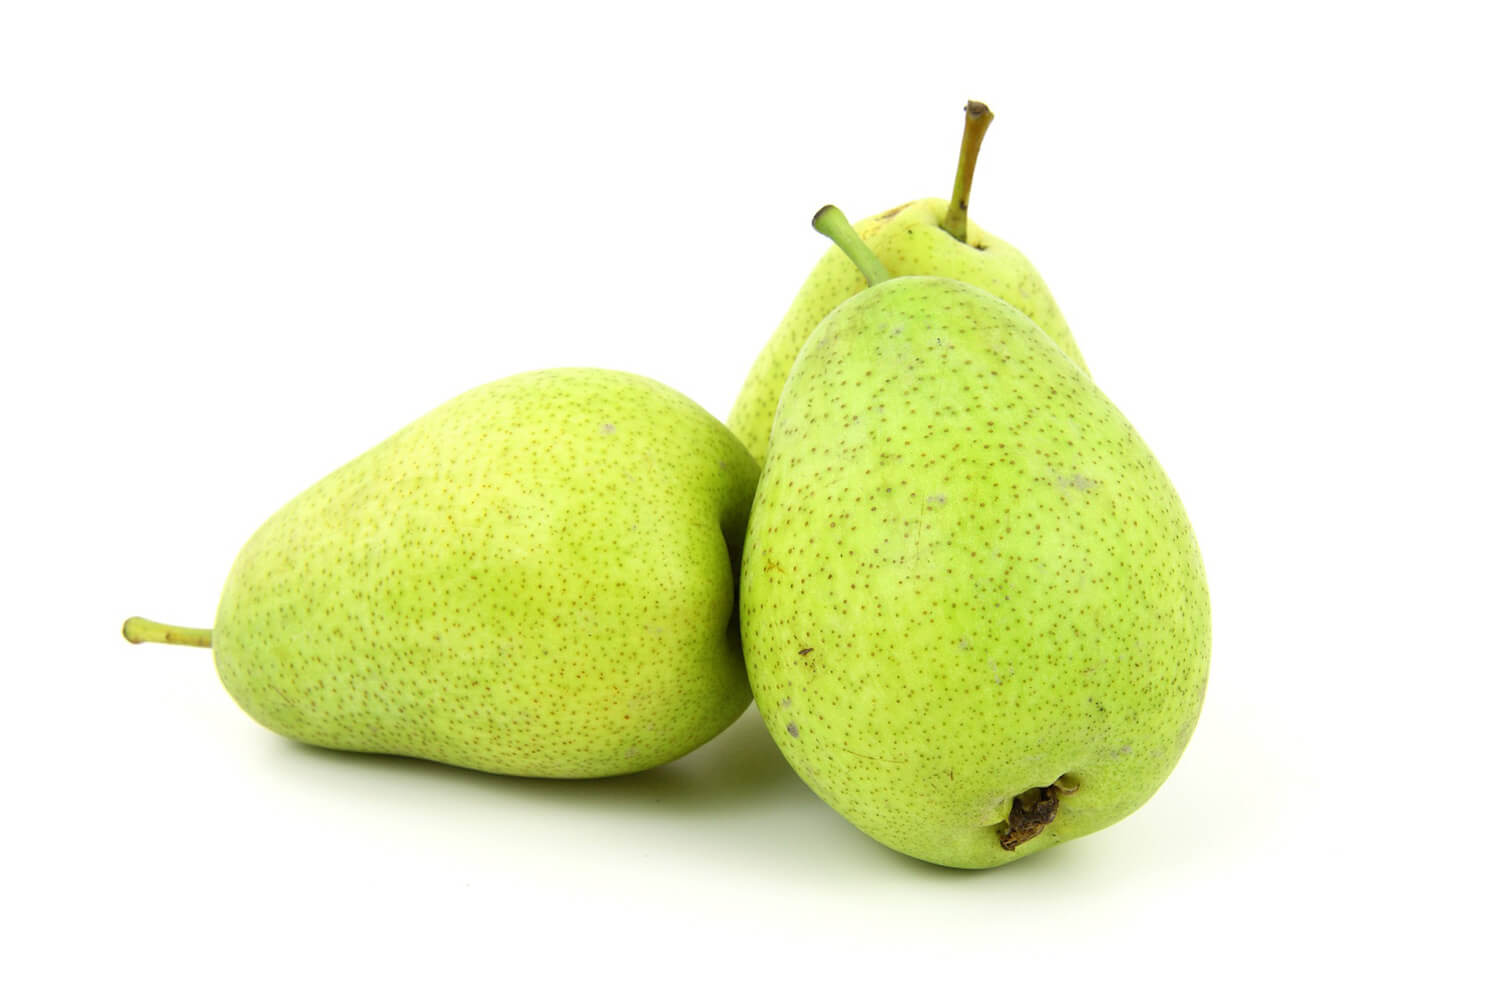 Benefits of Pears for Dogs and how much they can have